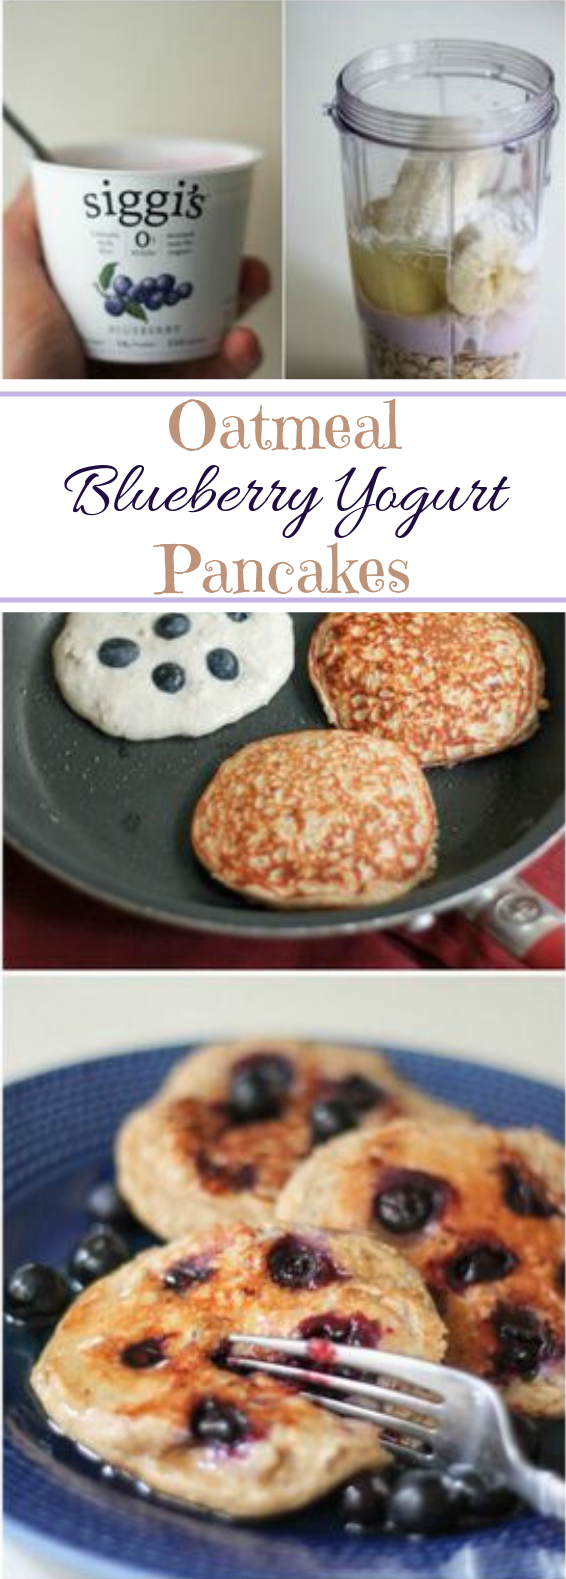 Oatmeal Blueberry Yogurt Pancakes #highprotein #glutenfree